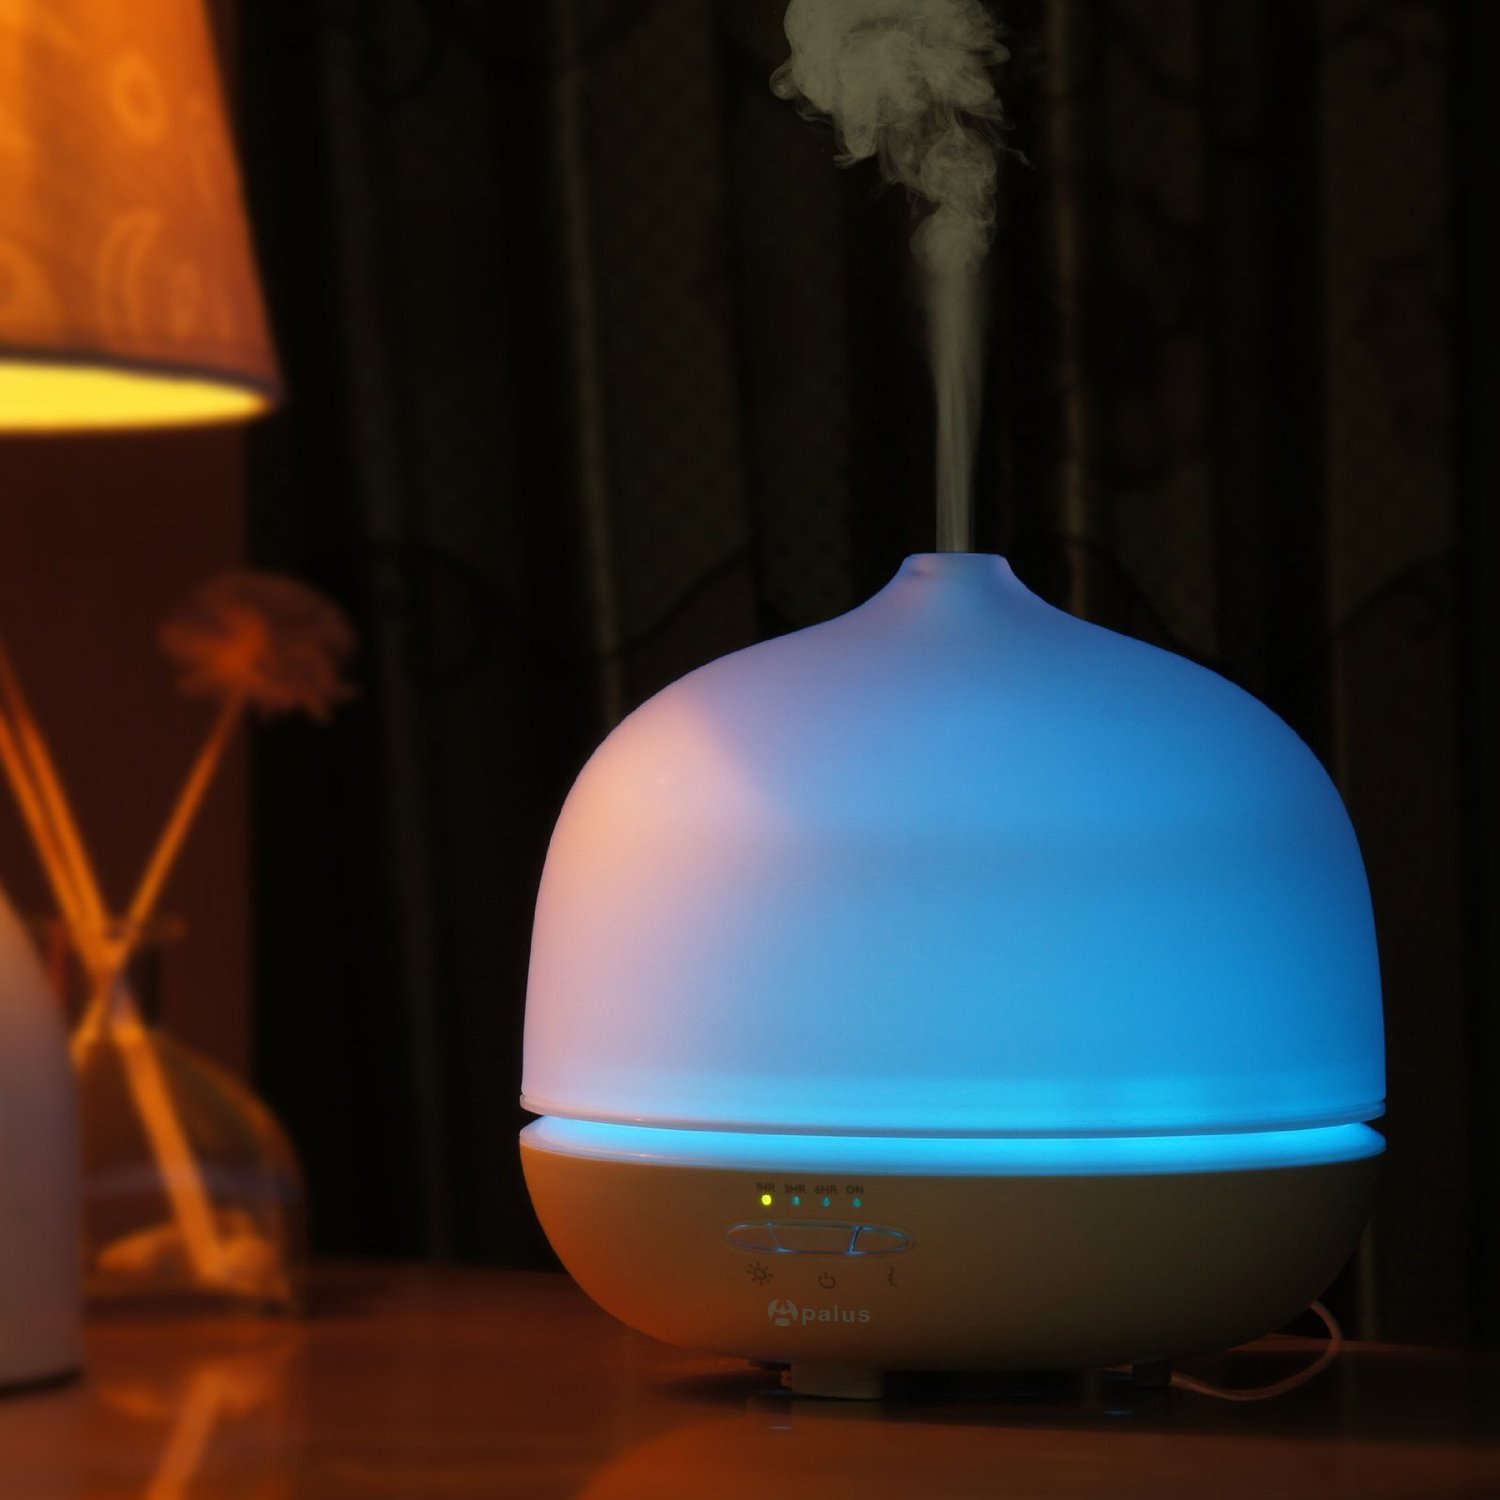 how to use aromatherapy diffuser